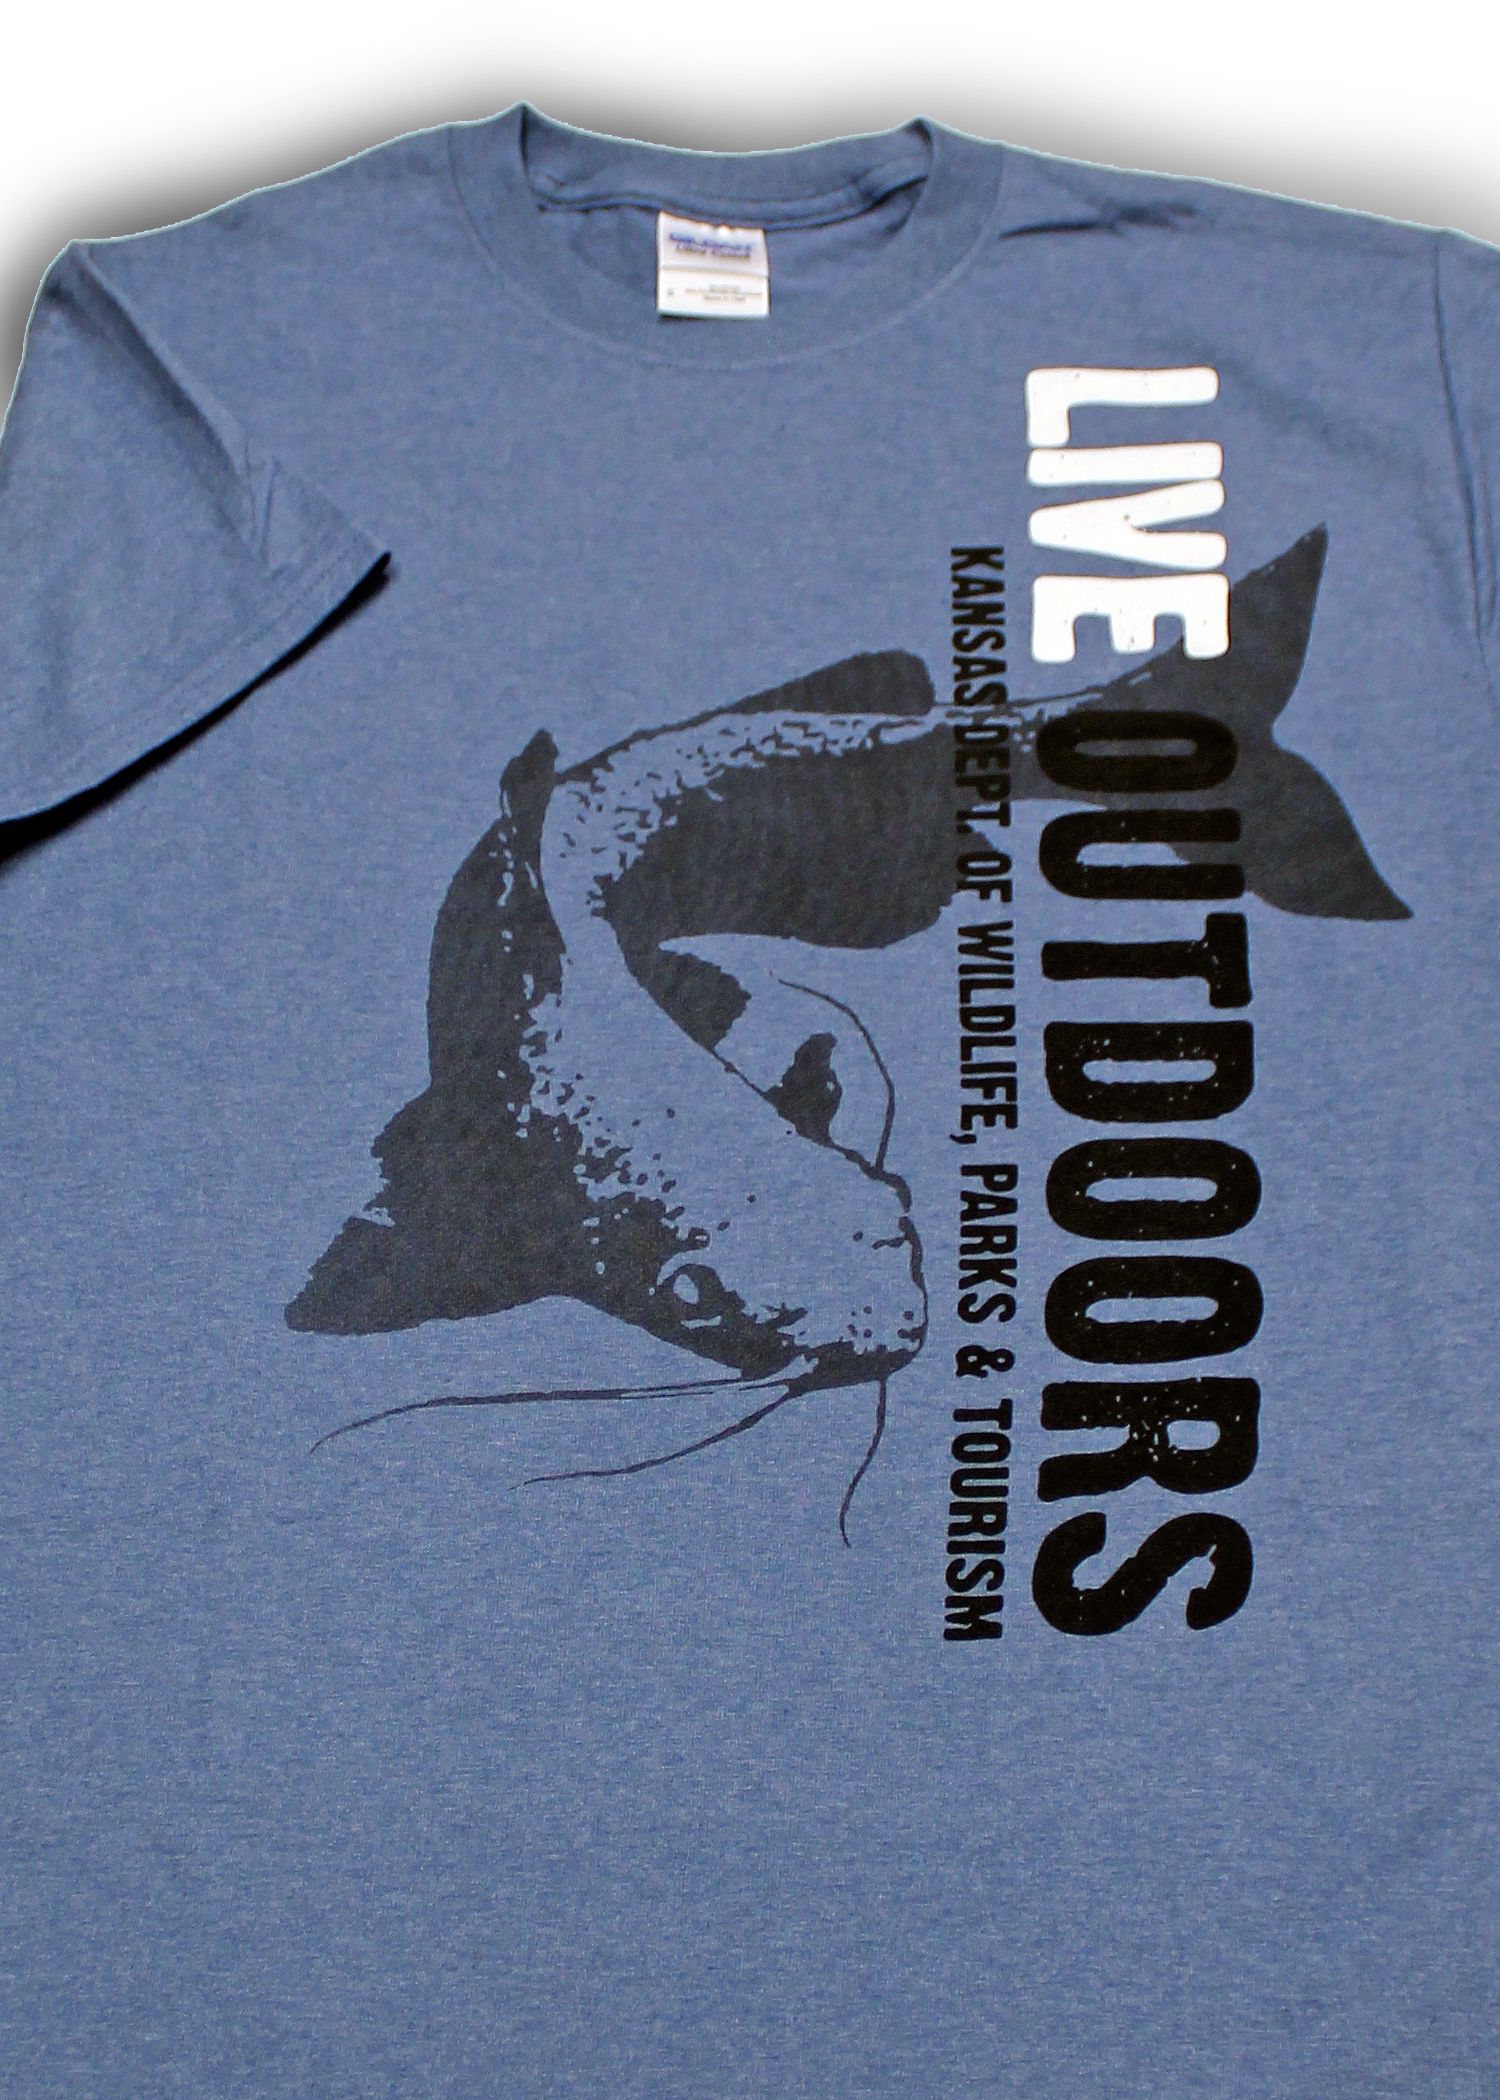 Hunting T Shirts For Men